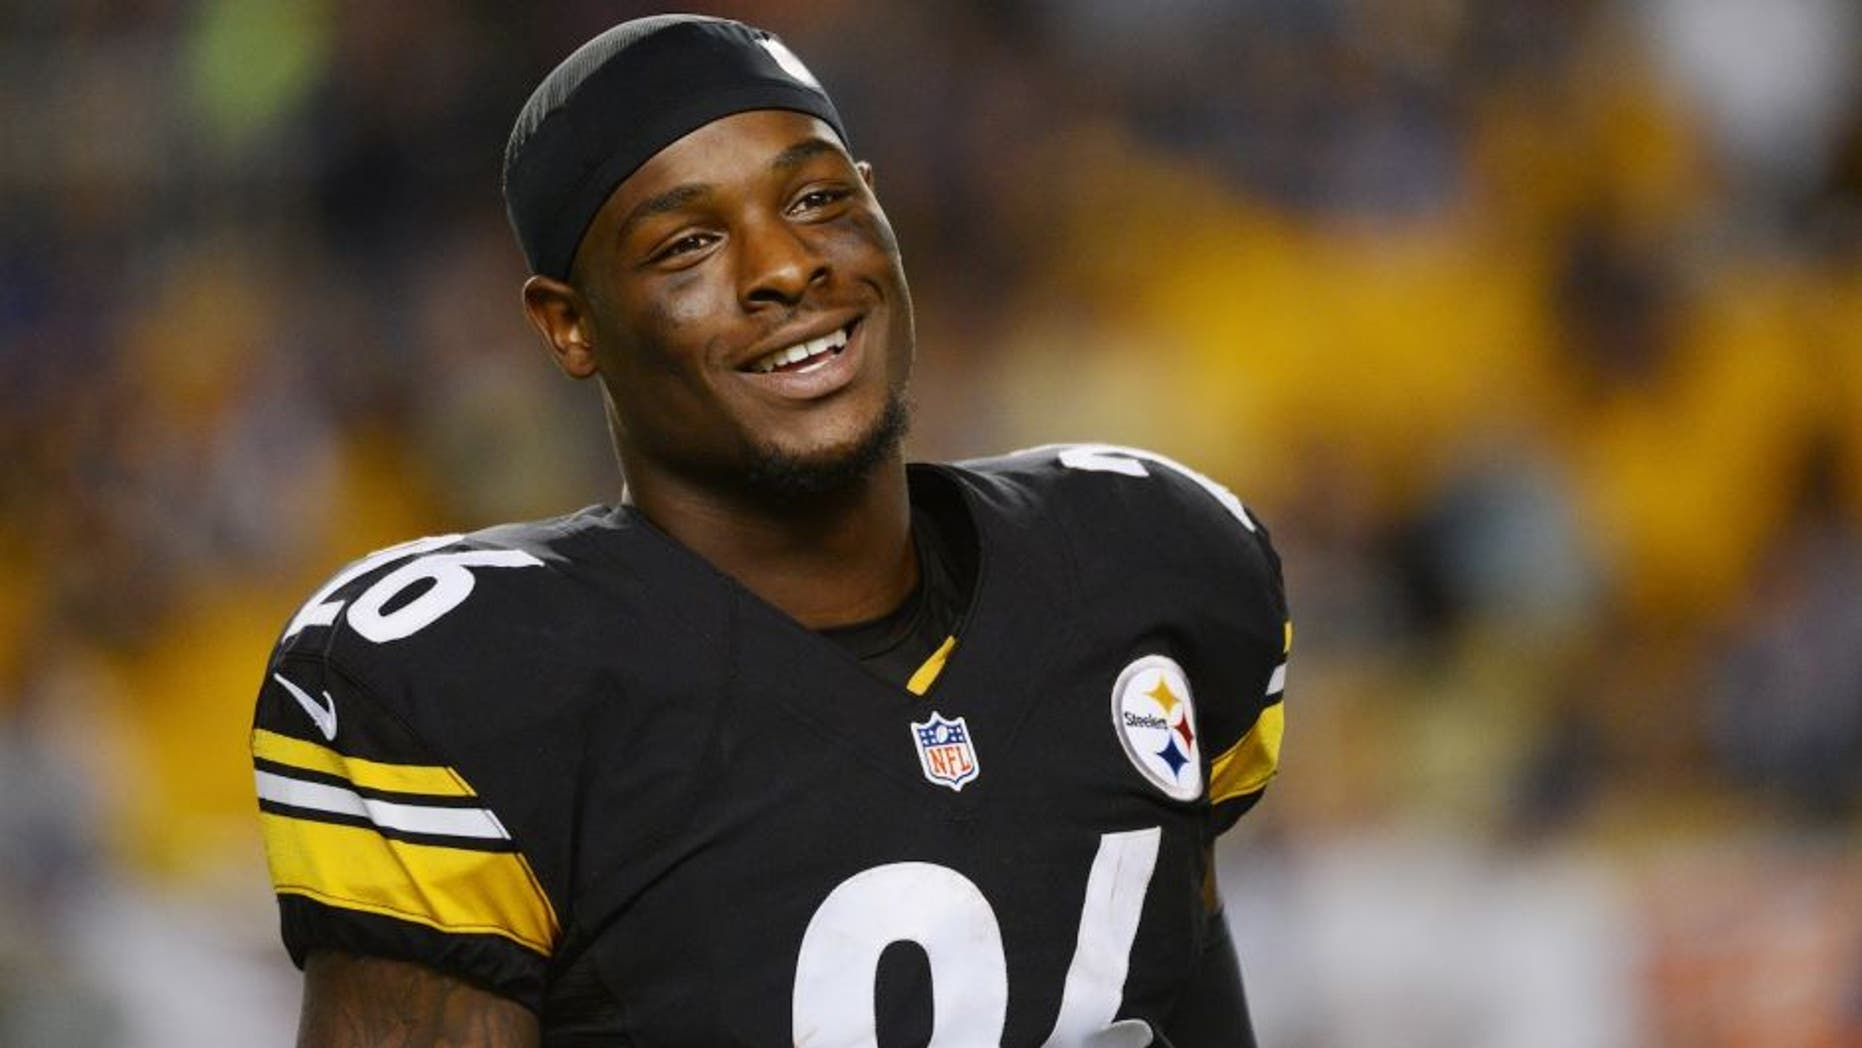 PITTSBURGH, PA - AUGUST 16: Running back Le'Veon Bell #26 of the Pittsburgh Steelers smiles as he looks on from the sideline during a preseason game against the Buffalo Bills at Heinz Field on August 16, 2014 in Pittsburgh, Pennsylvania. The Steelers defeated the Bills 19-16. (Photo by George Gojkovich/Getty Images) *** Local Caption *** Le'Veon Bell